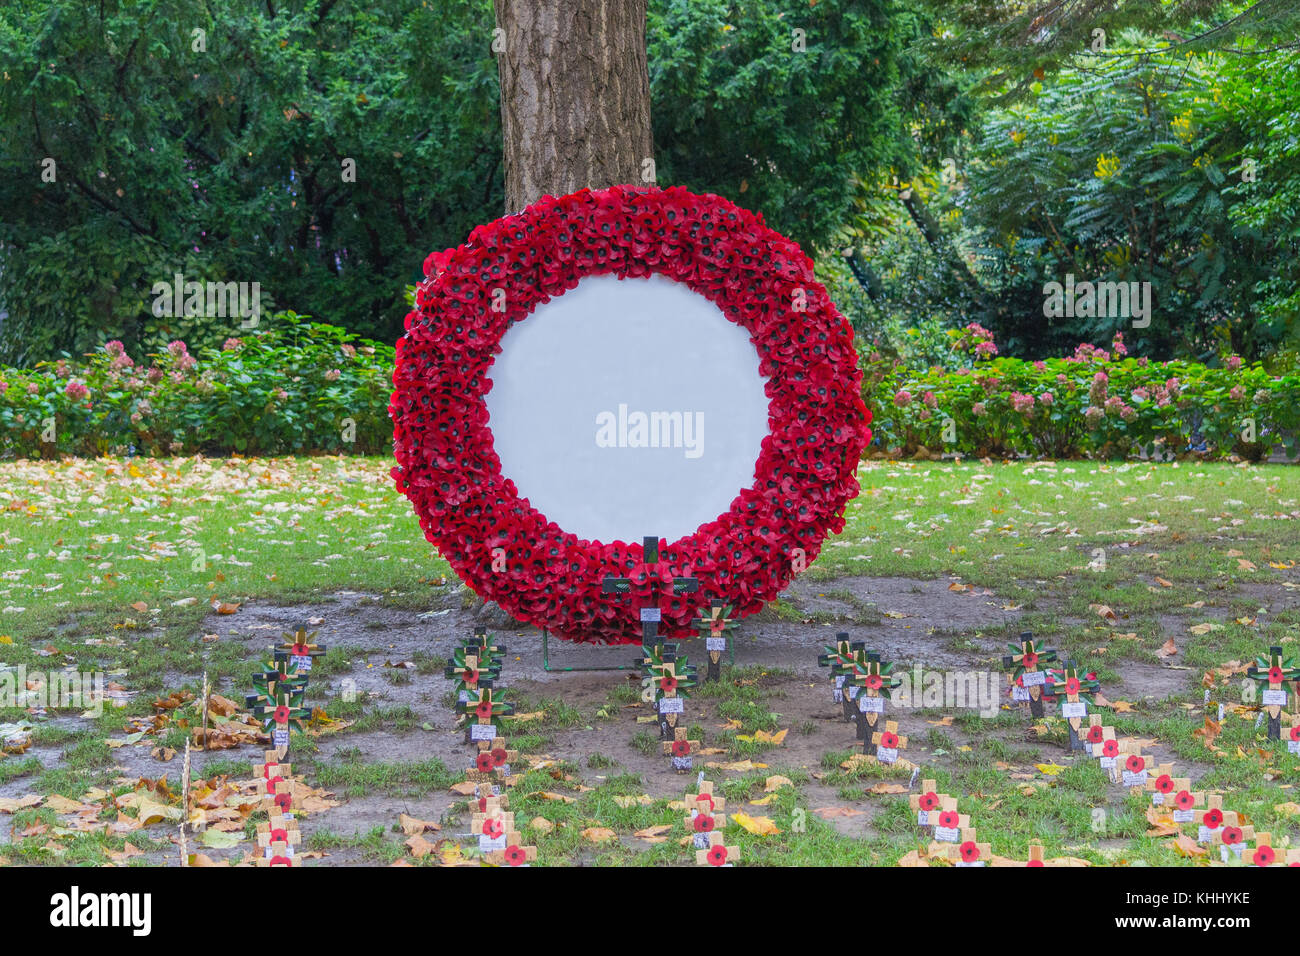 Poppy wreath for remembrance day - Stock Image